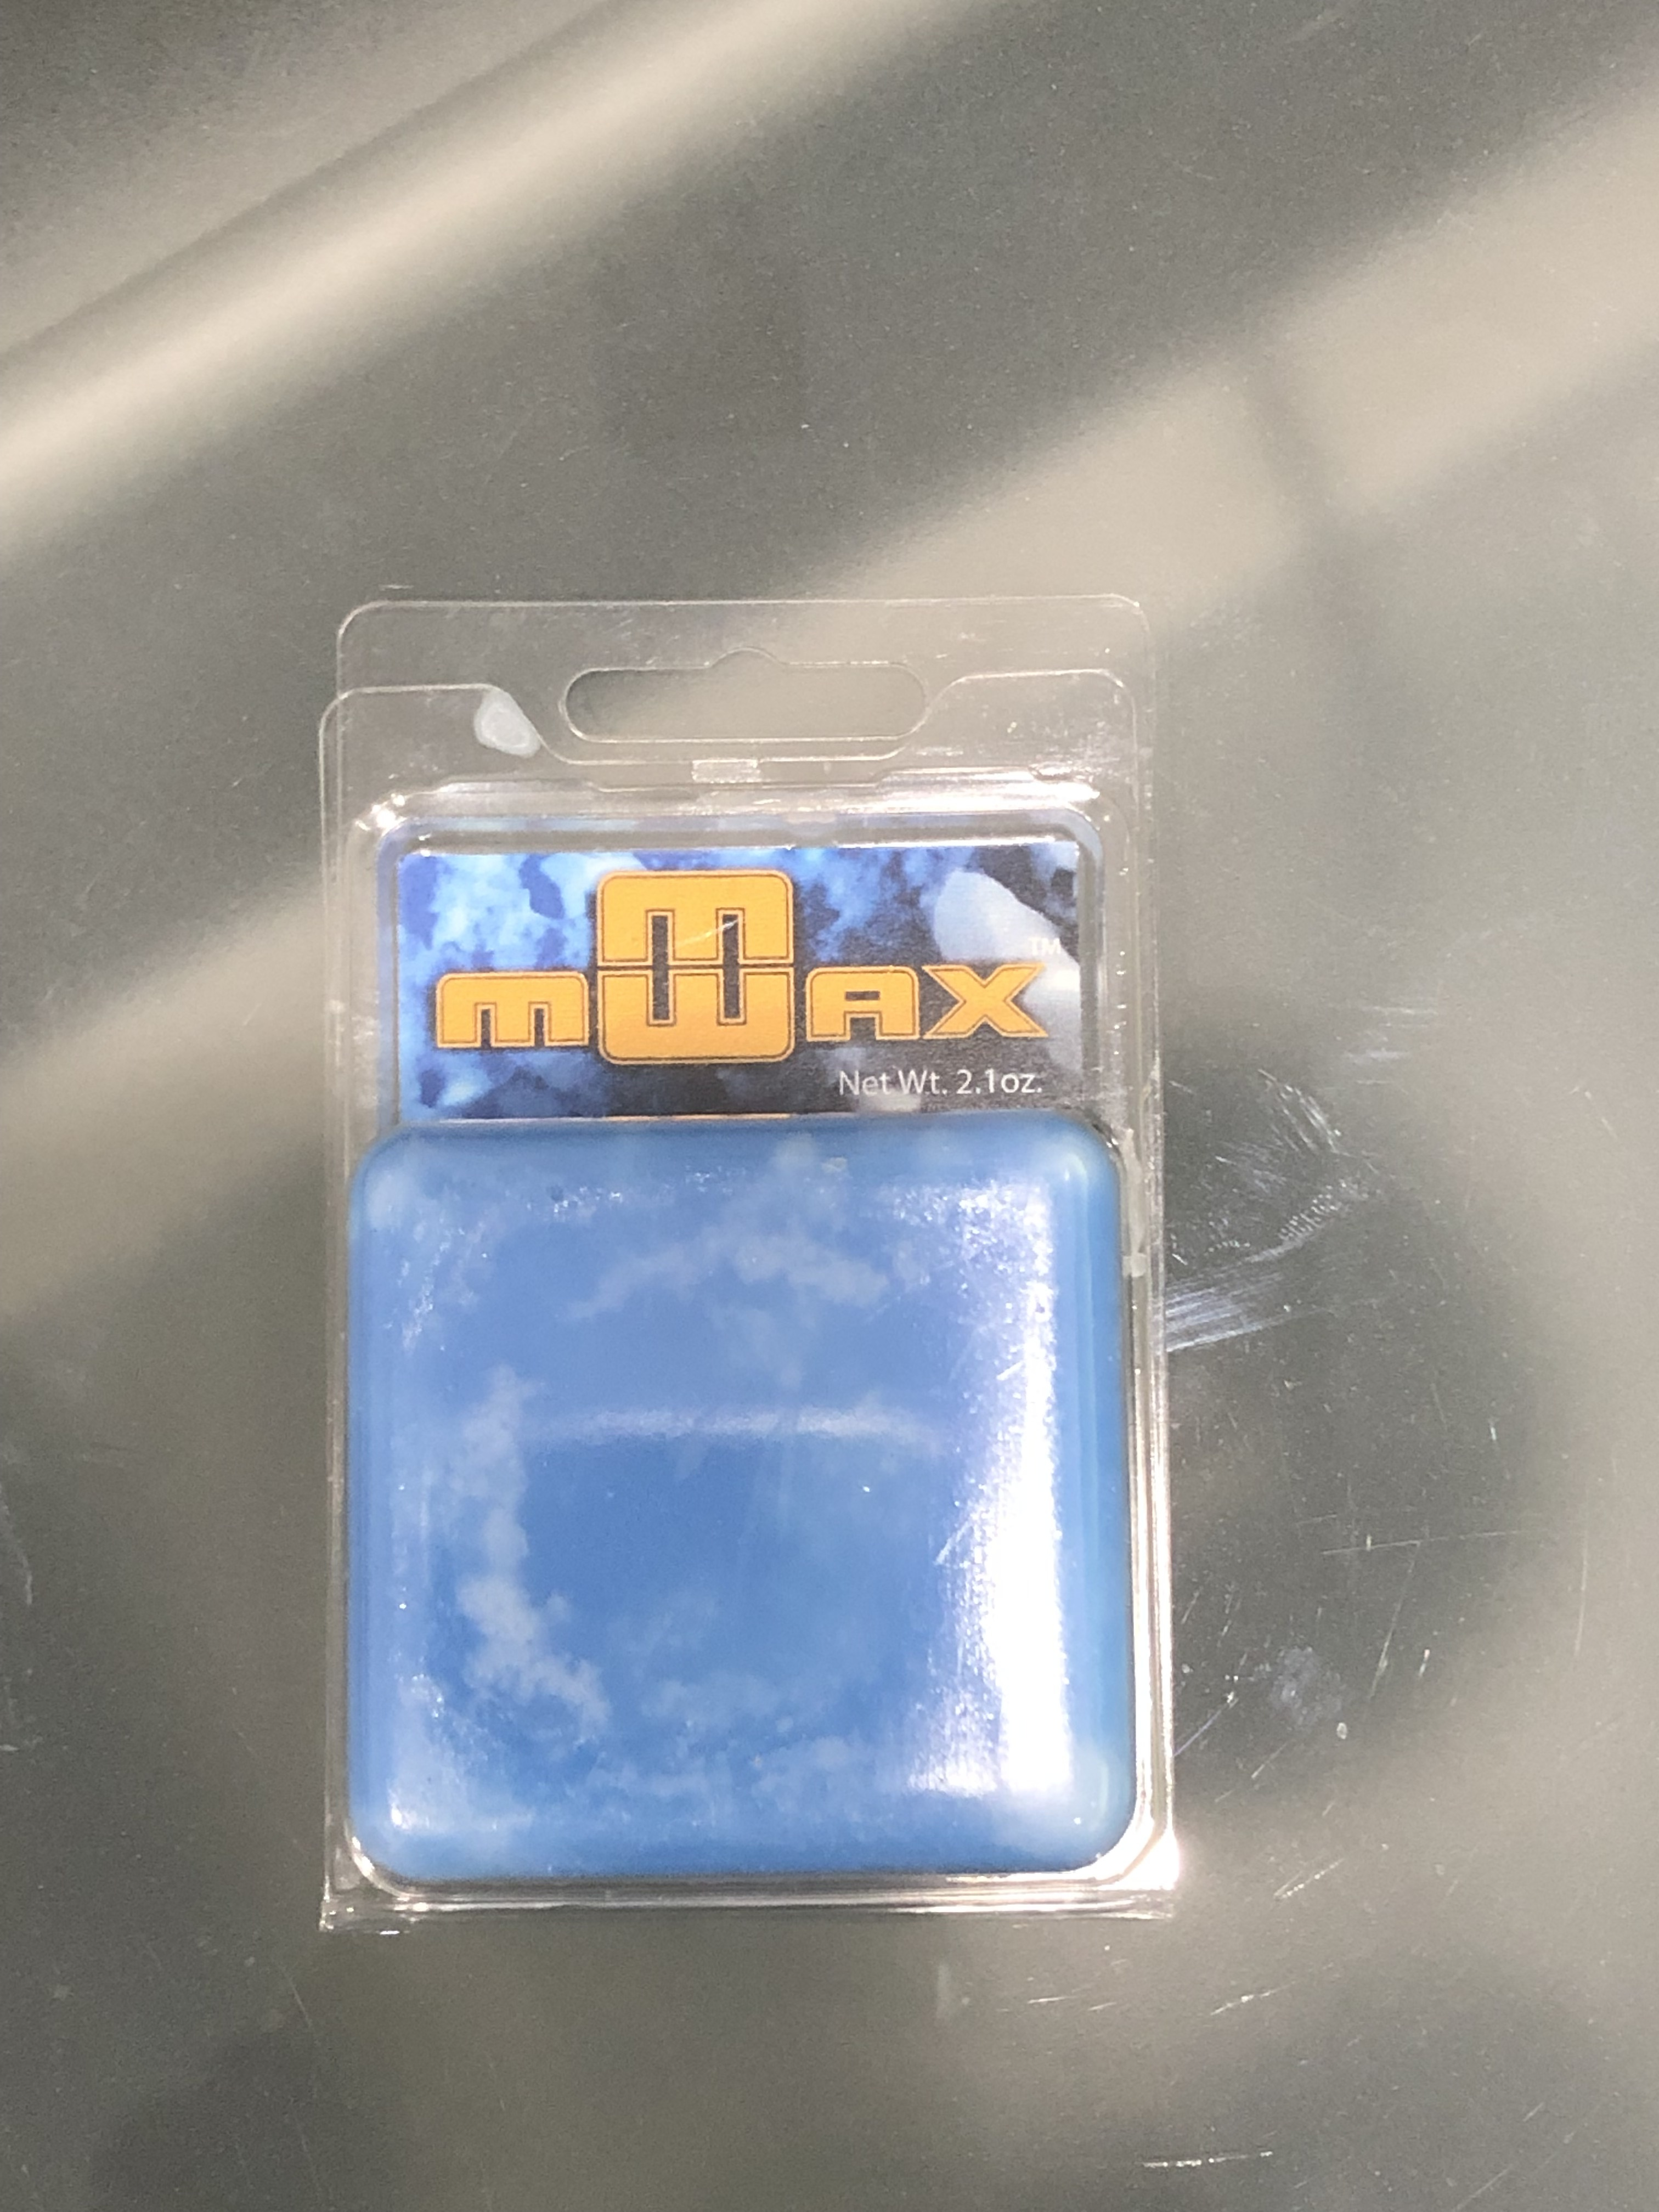 mWax 6-pack